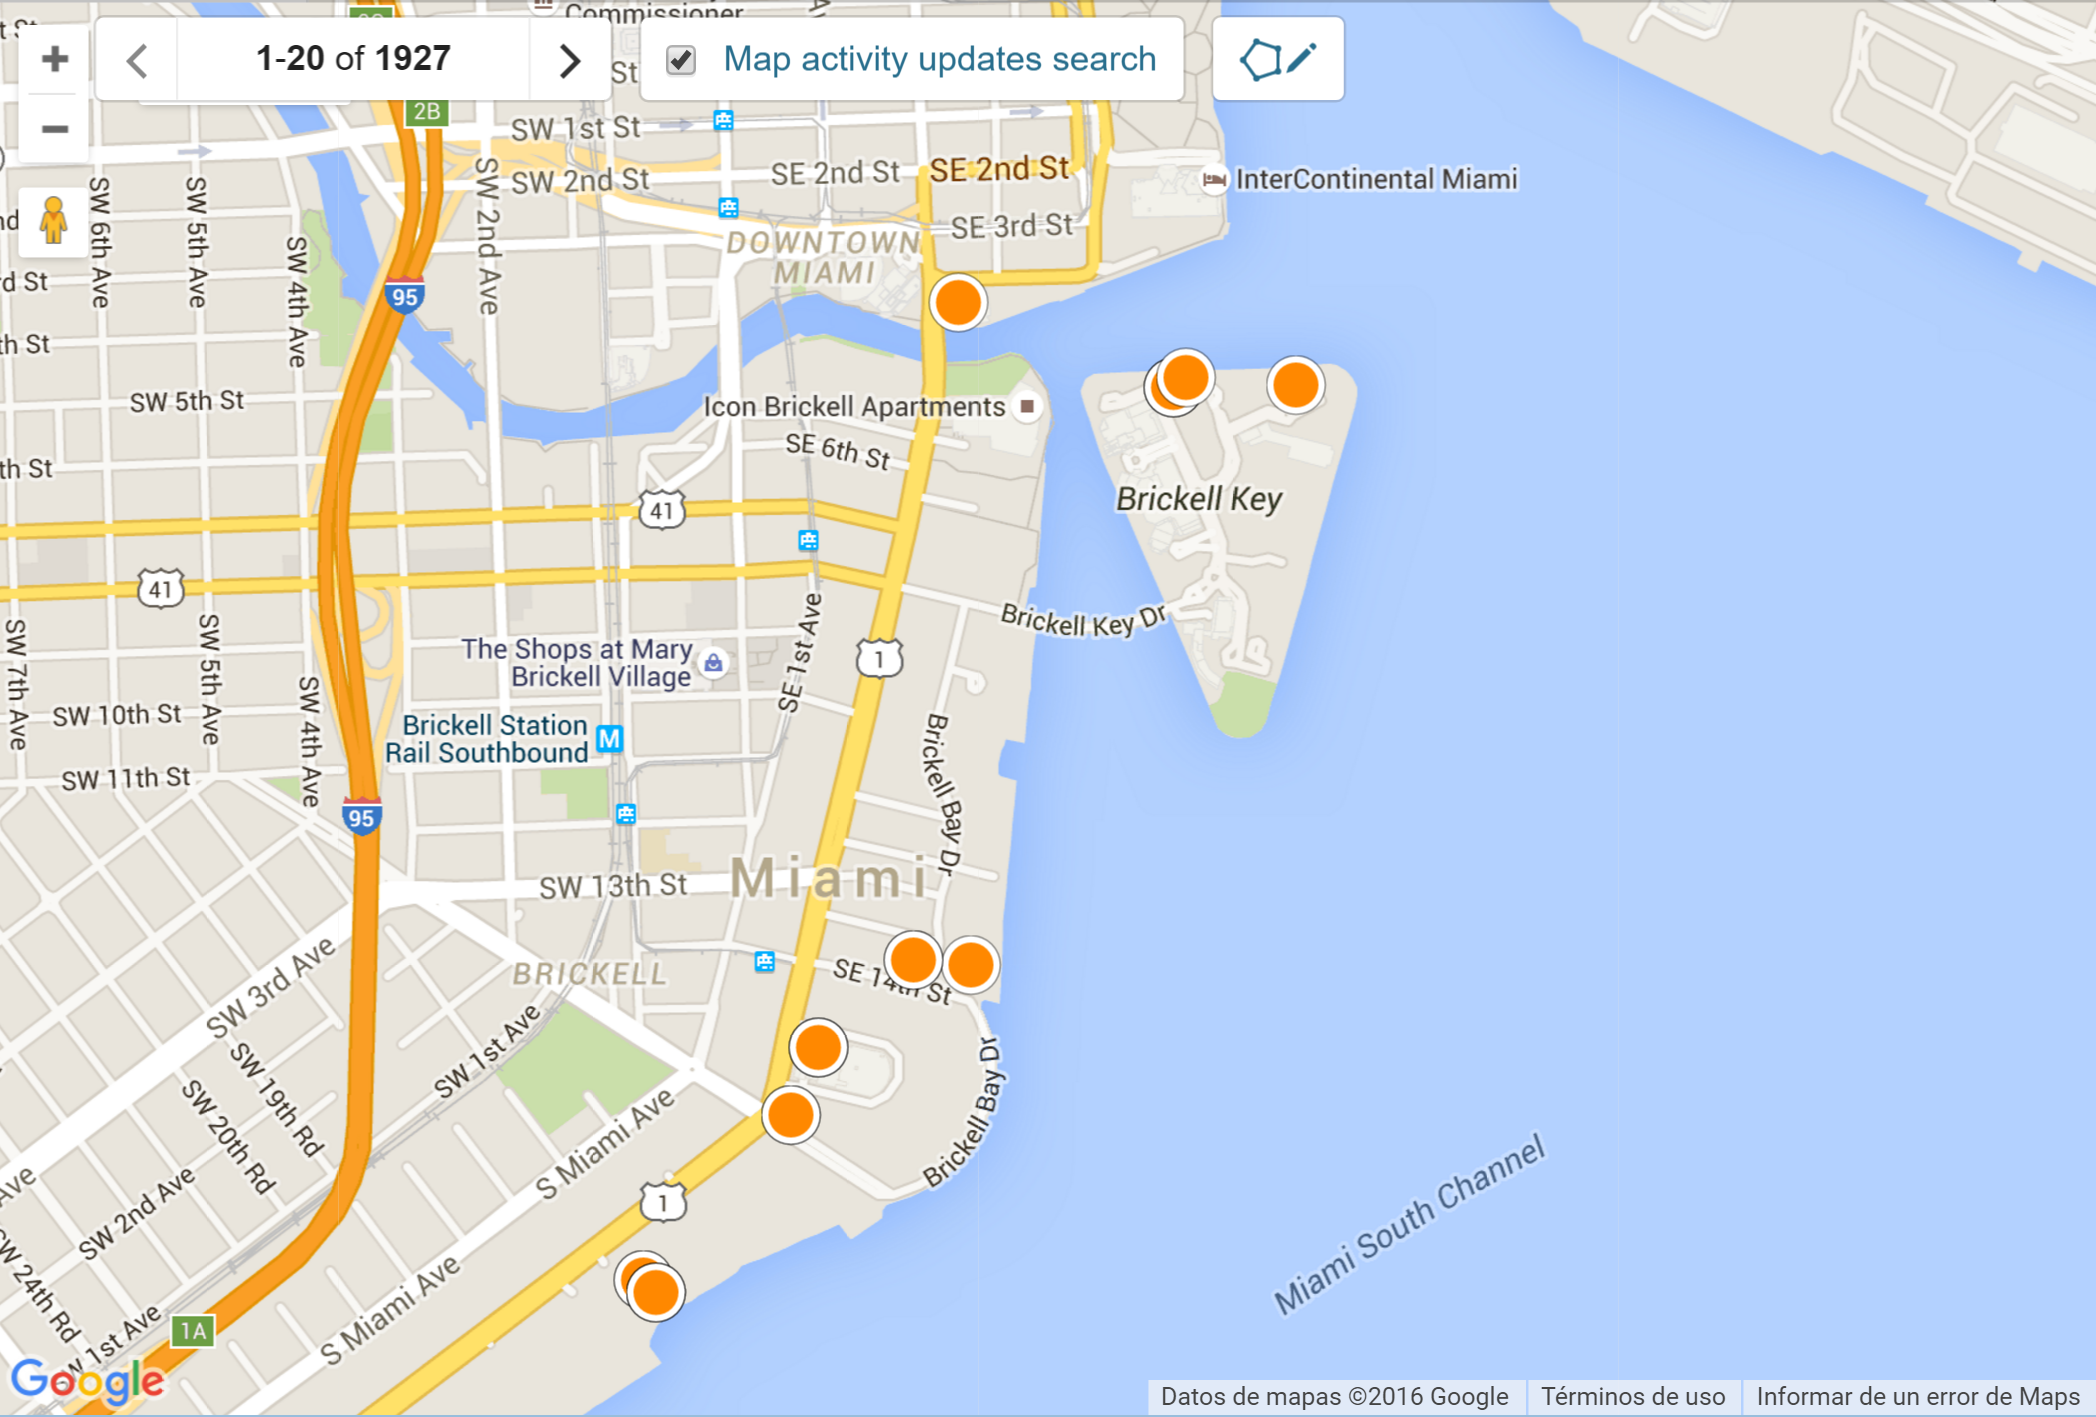 brickell easy real estate search- fastest way to find all